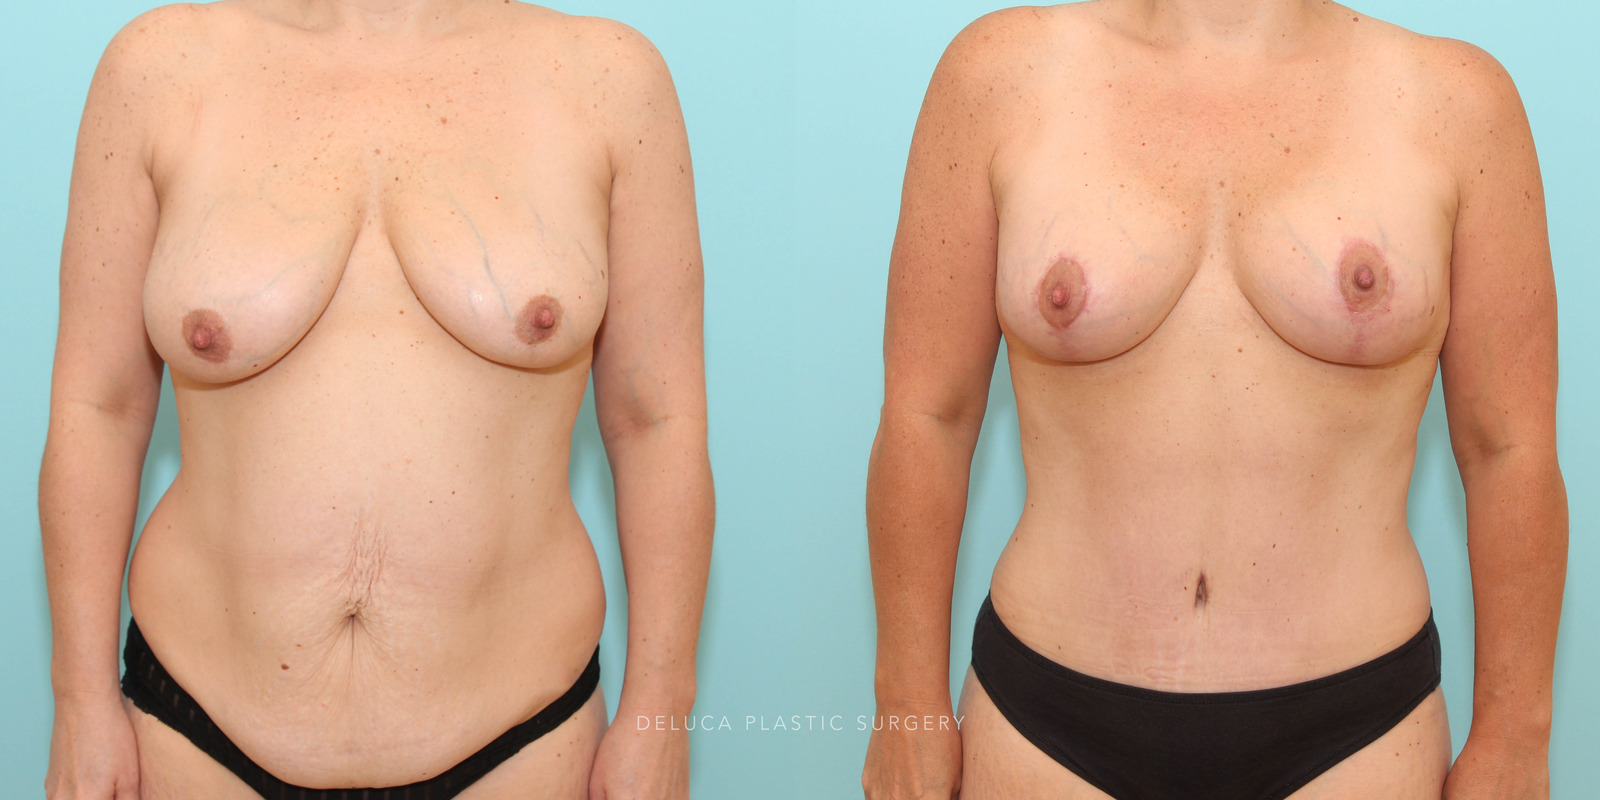 43 year old Mommy Makeover - Breast Lift and Augmentation and Abdominoplasty